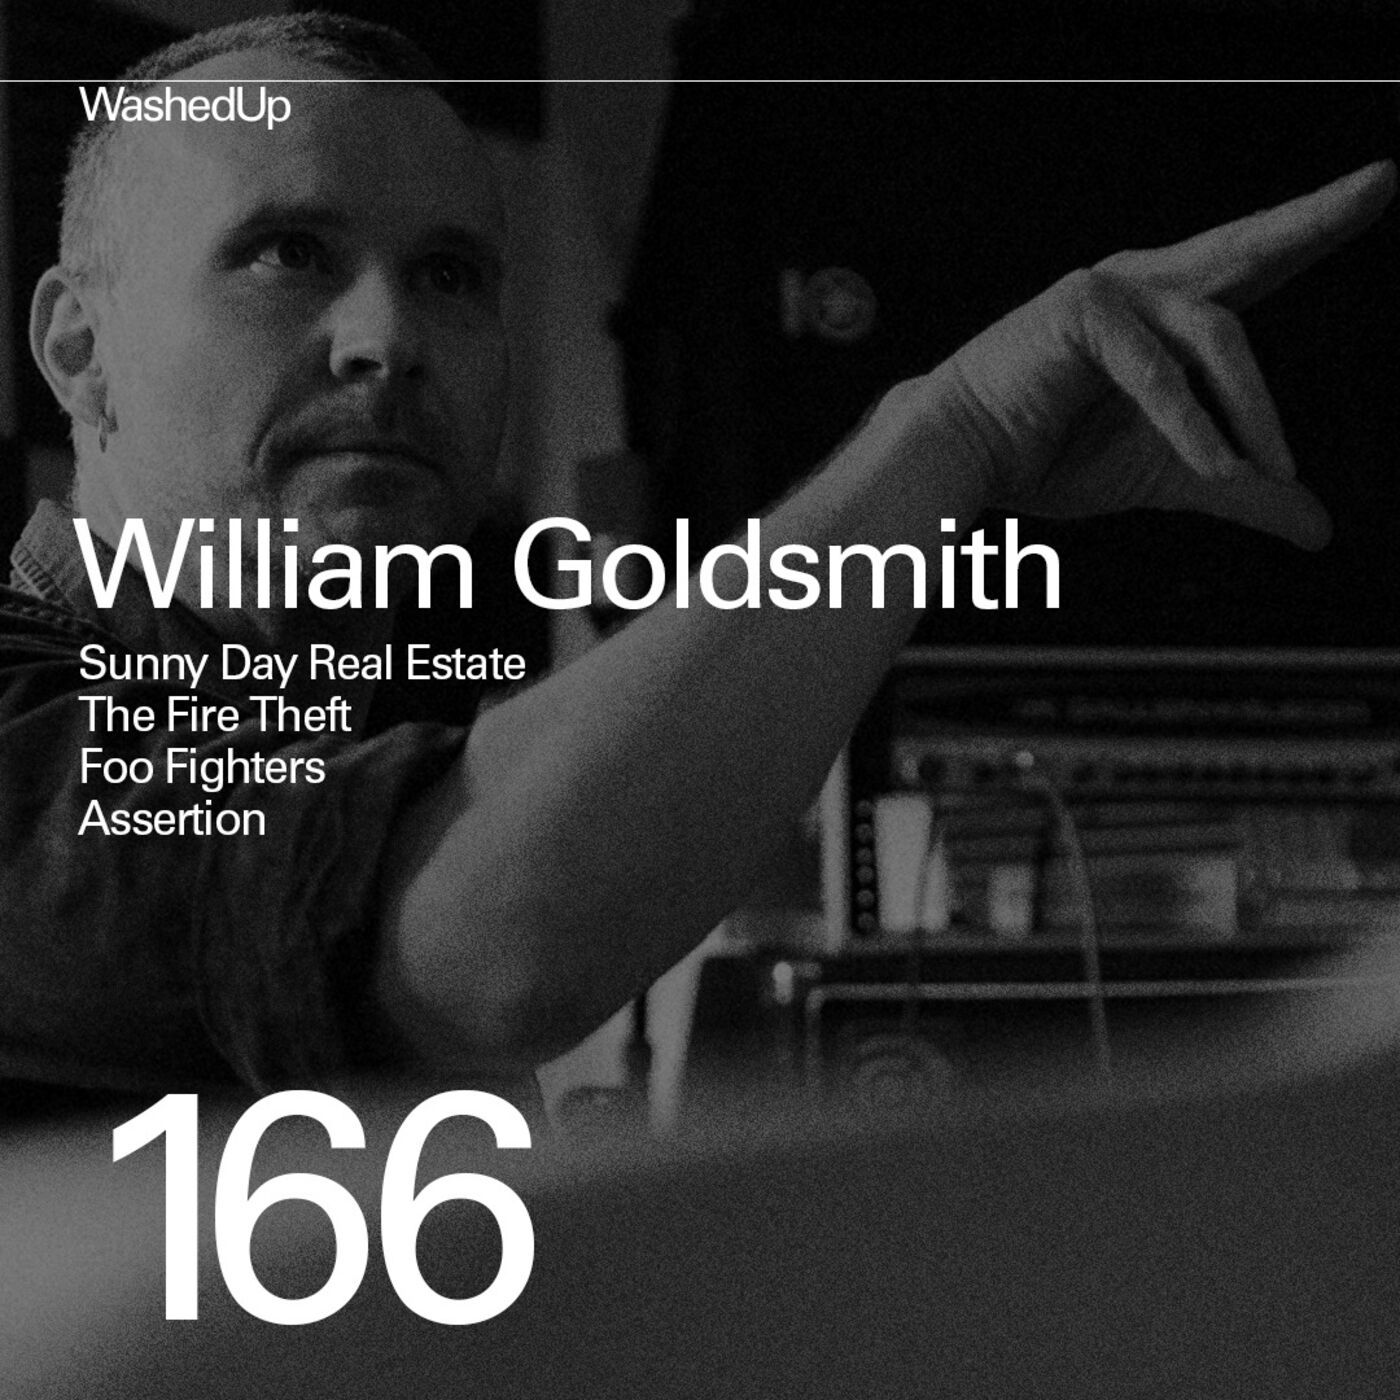 #166 - William Goldsmith (Sunny Day Real Estate, The Fire Theft, Foo Fighters, Assertion)